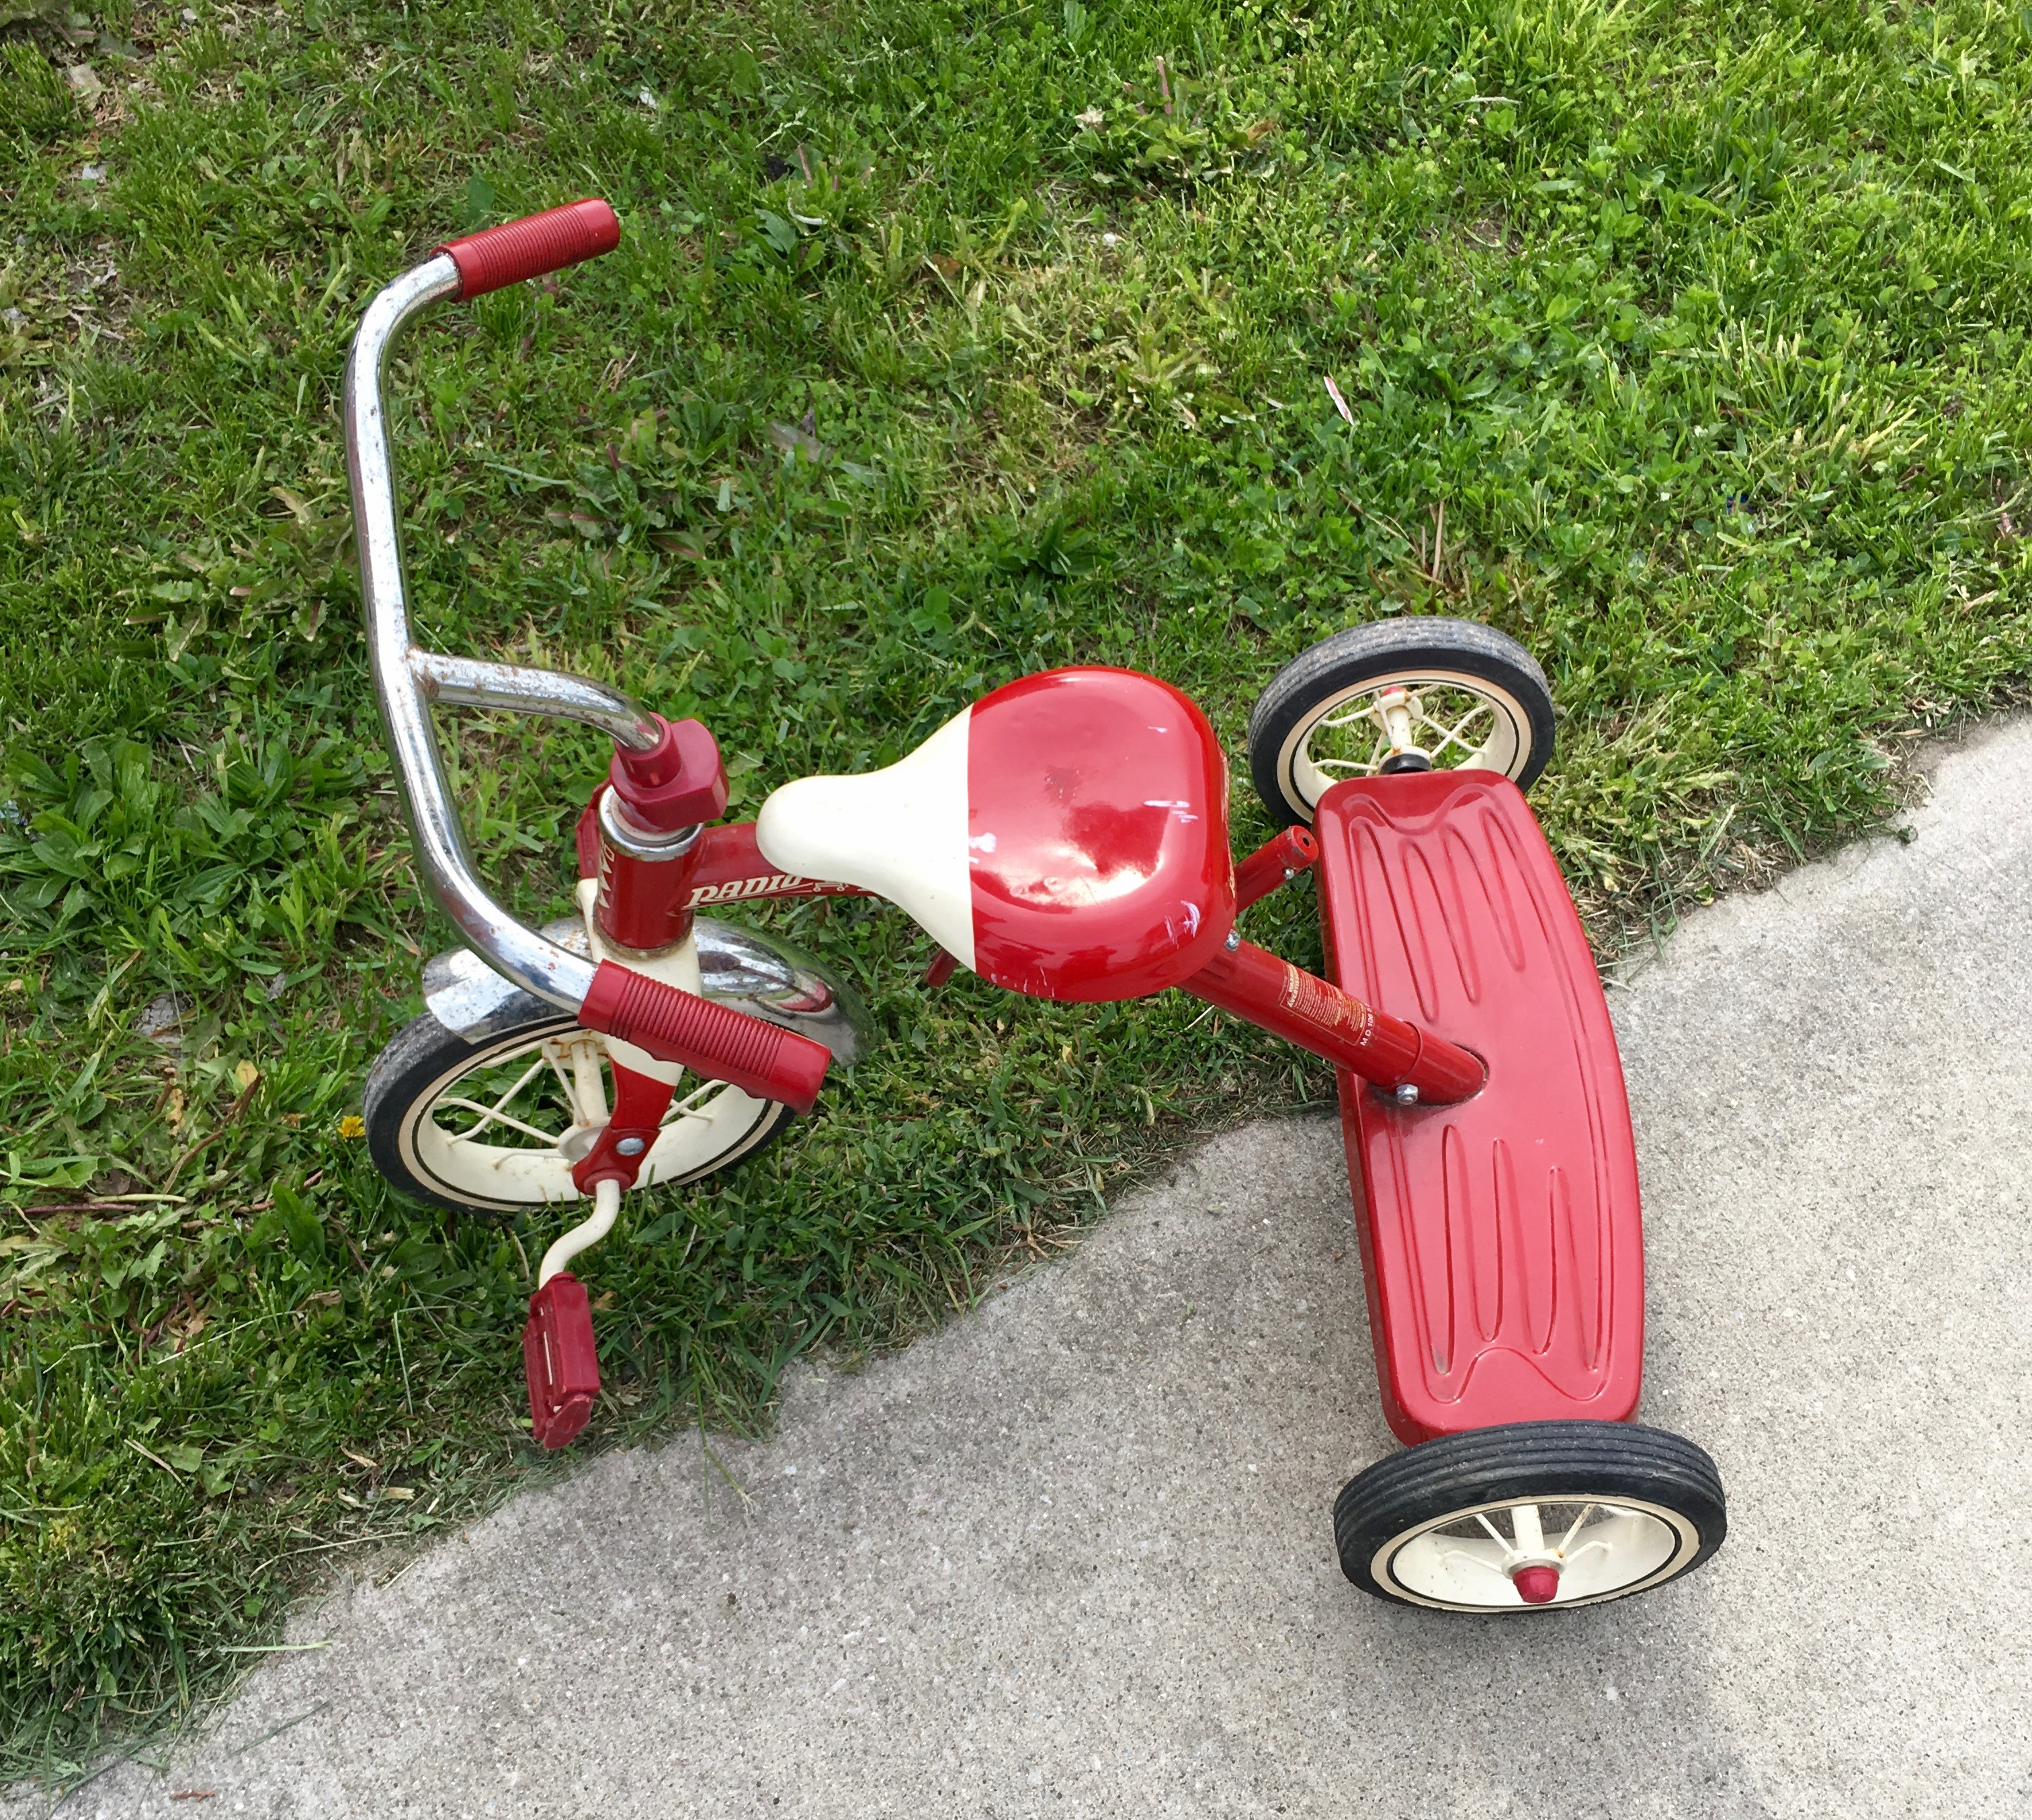 Red and white tricycle on edge of grass